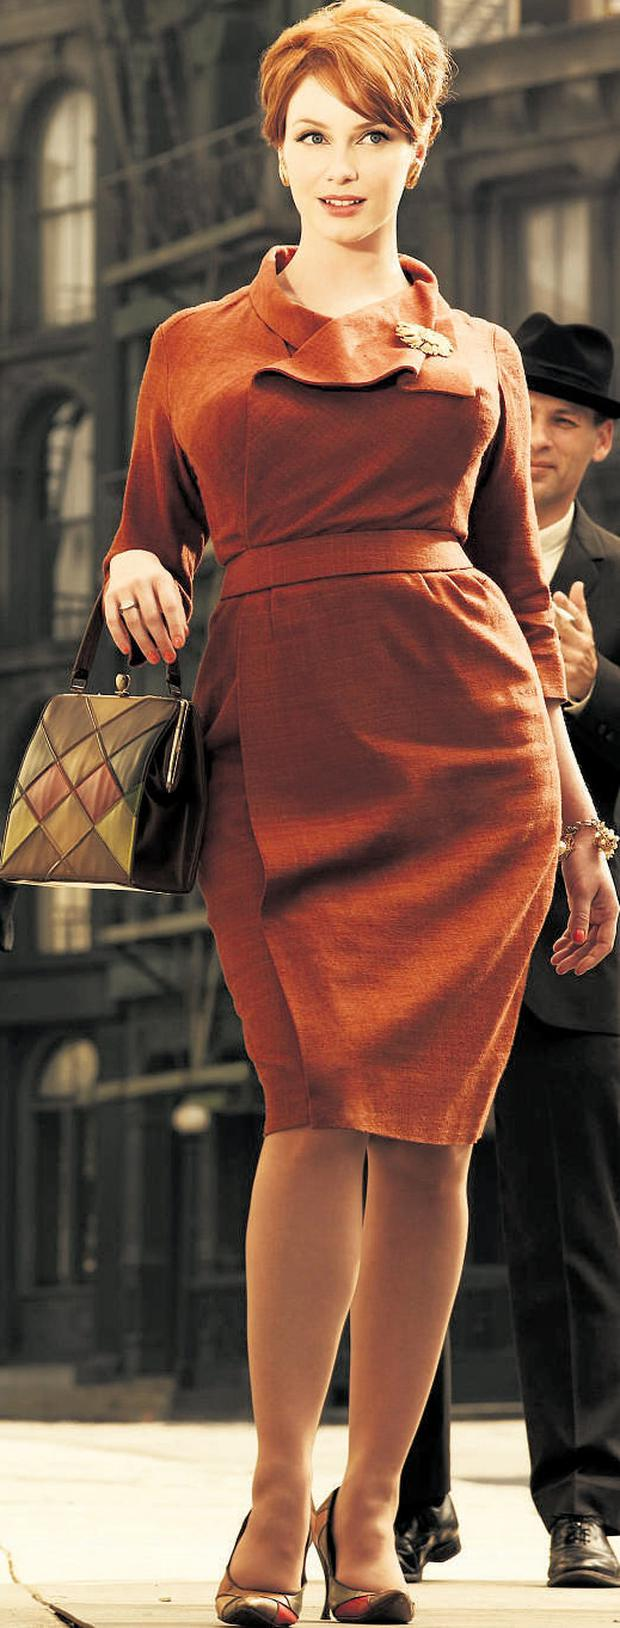 How mad men is bringing real women back into fashion Mad style fashion life trend